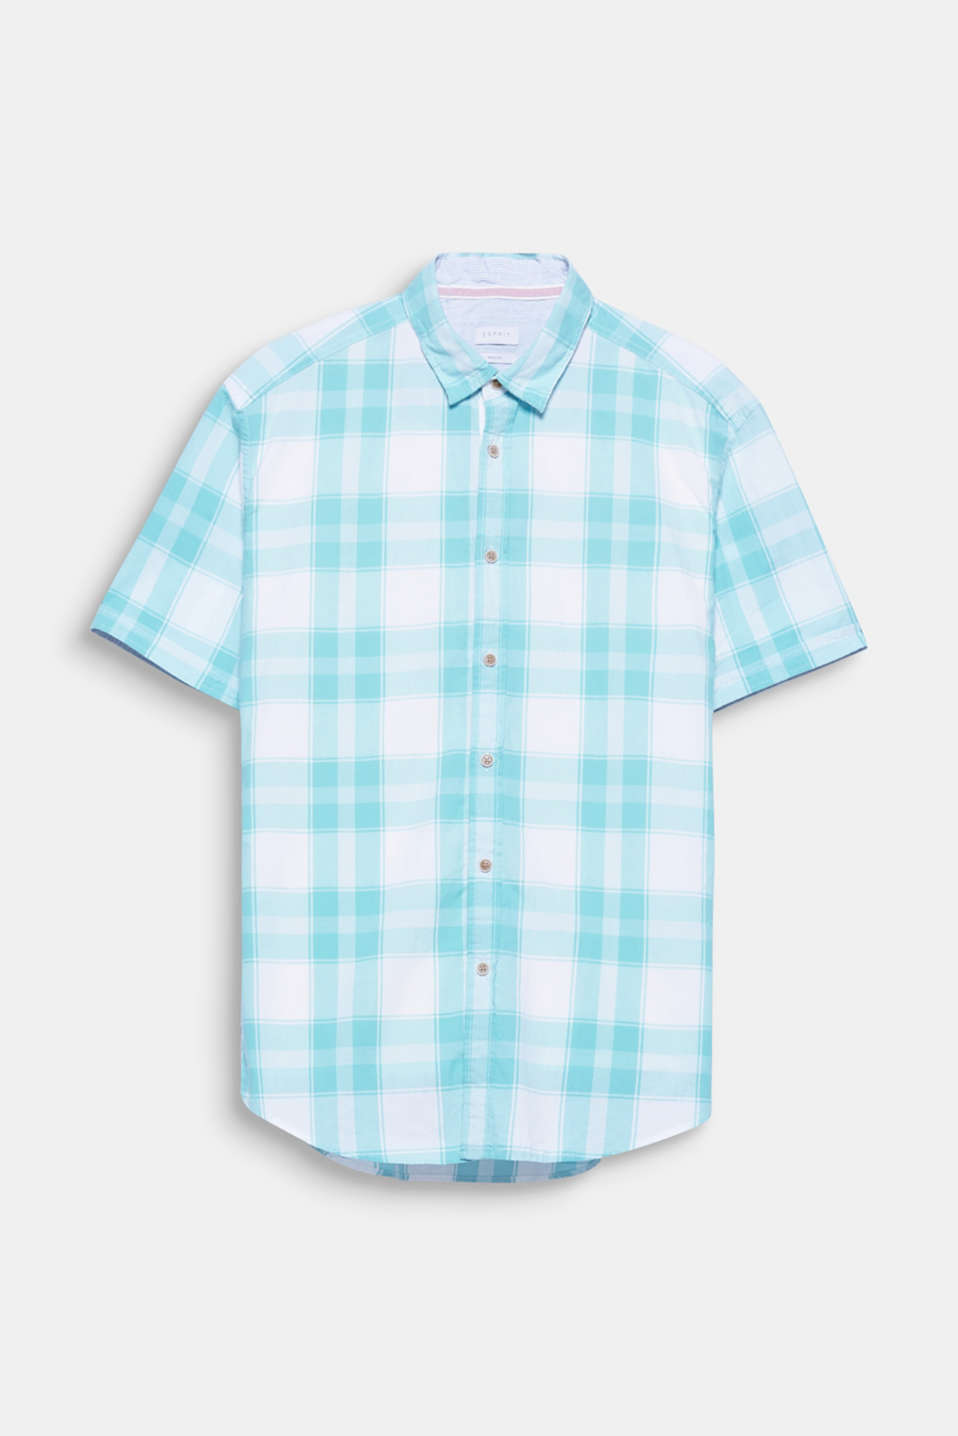 We love checked patterns! This short sleeve shirt with a check pattern impresses with its soft pastel tones.